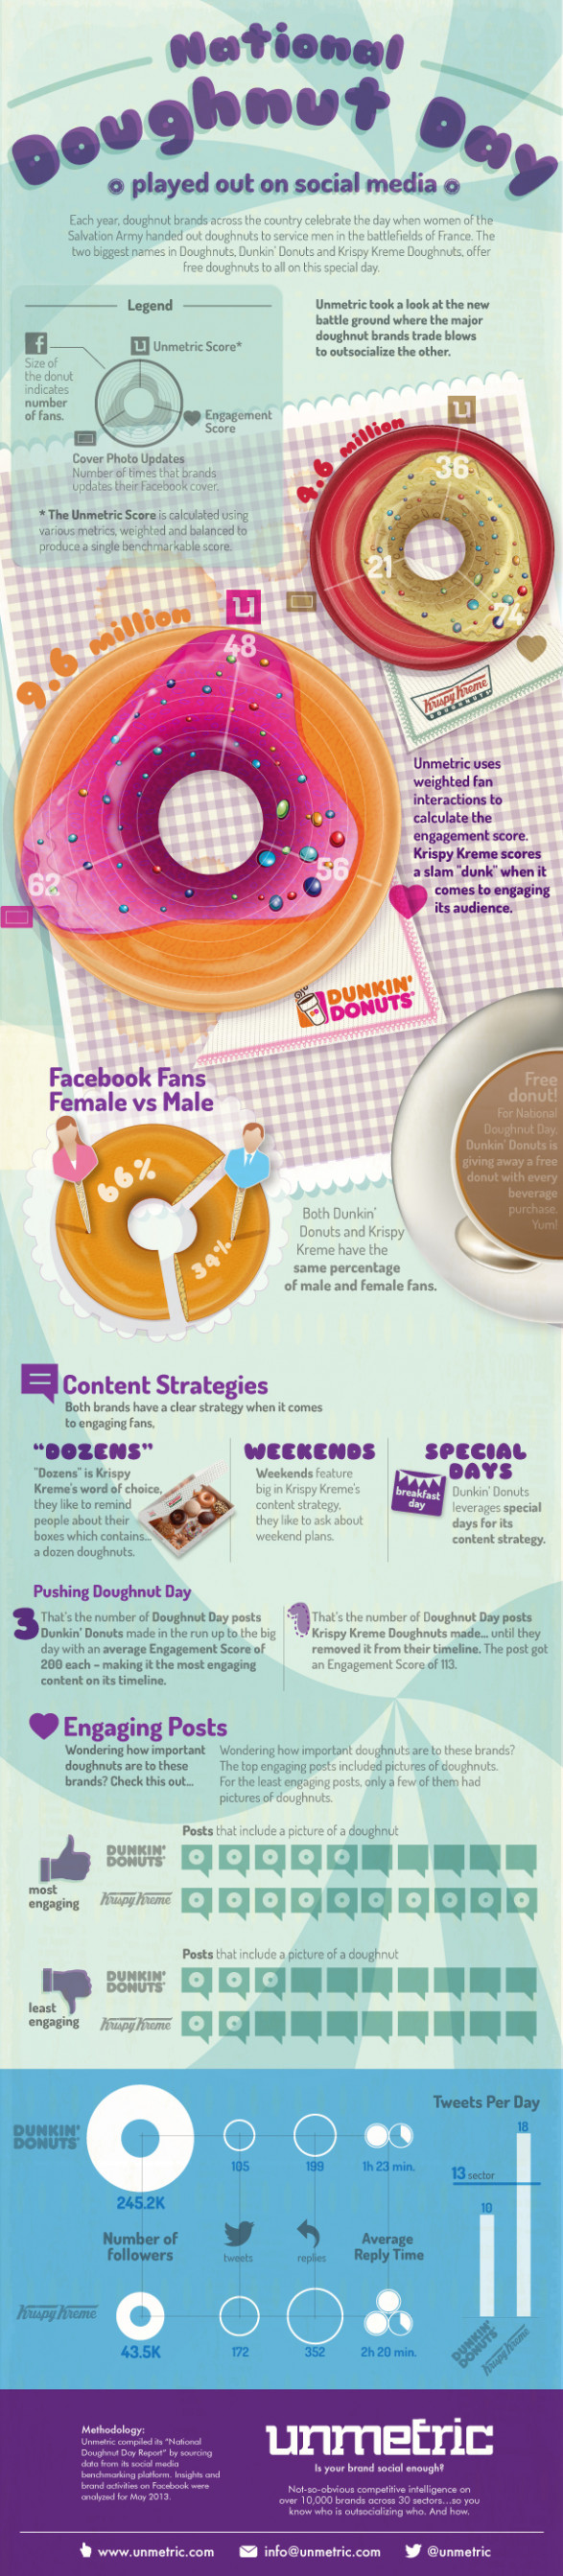 Doughnut Day: played out on social media